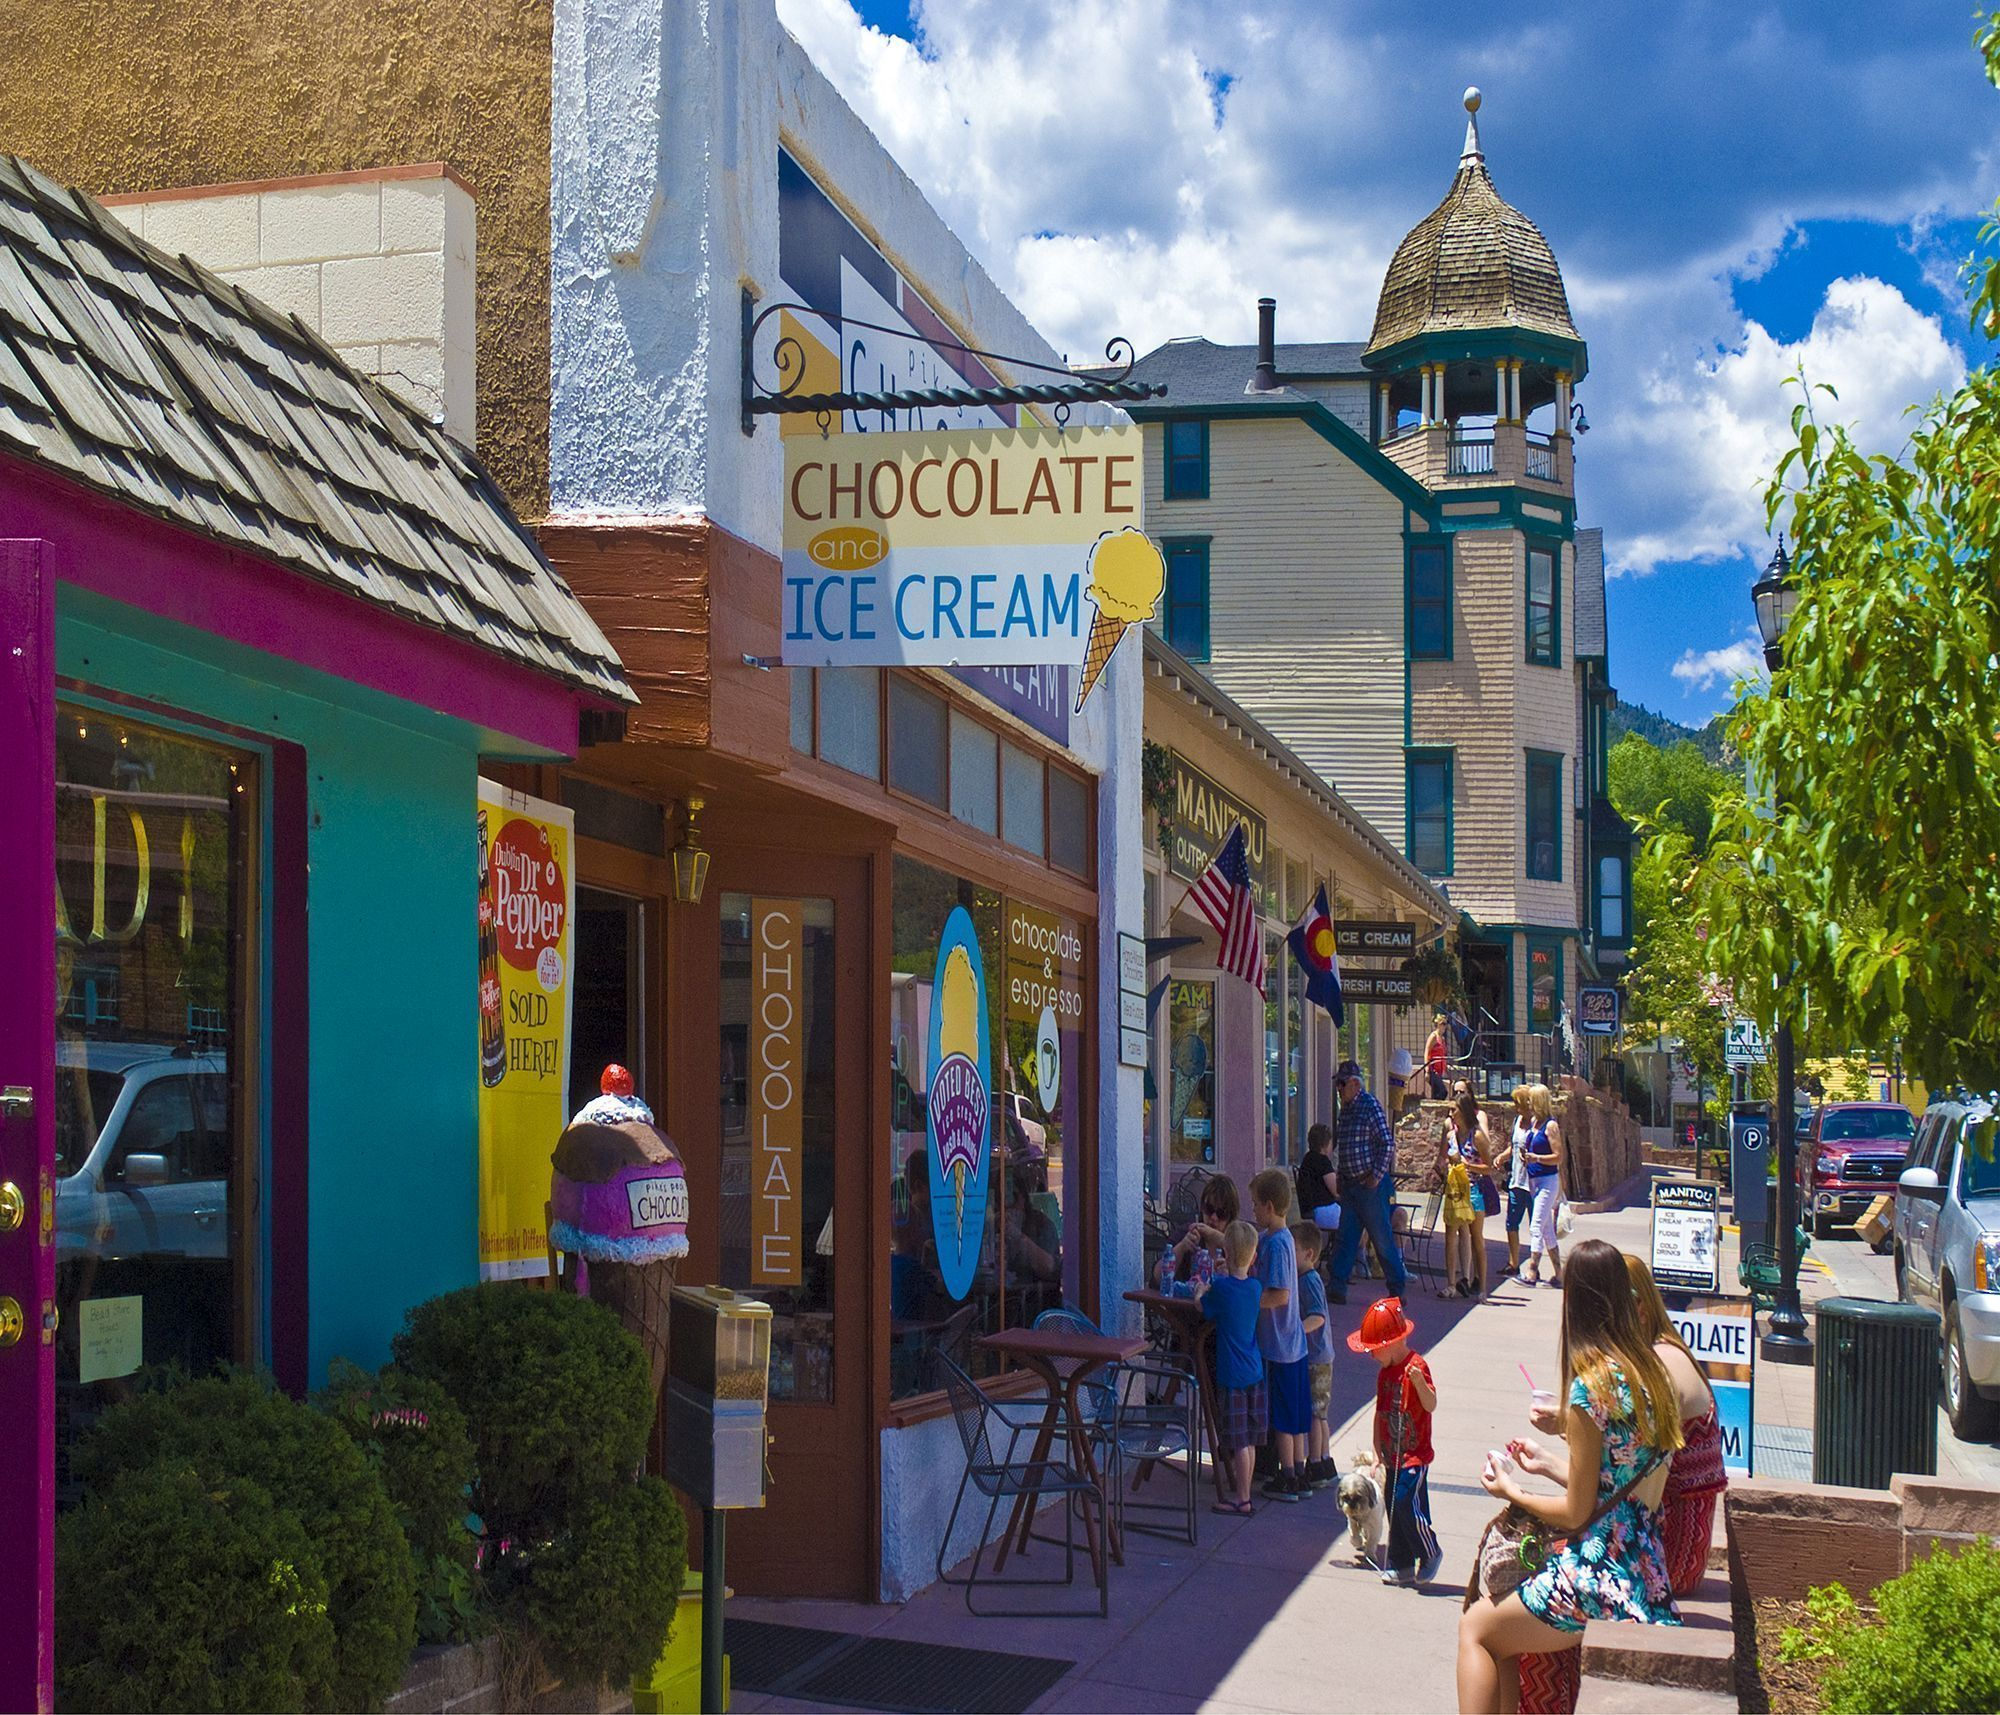 Manitou Springs, CO... I fell in love with this town years ago and really want to live here! #manitousprings Manitou Springs, CO... I fell in love with this town years ago and really want to live here! #manitousprings Manitou Springs, CO... I fell in love with this town years ago and really want to live here! #manitousprings Manitou Springs, CO... I fell in love with this town years ago and really want to live here! #manitousprings Manitou Springs, CO... I fell in love with this town years ago a #manitousprings